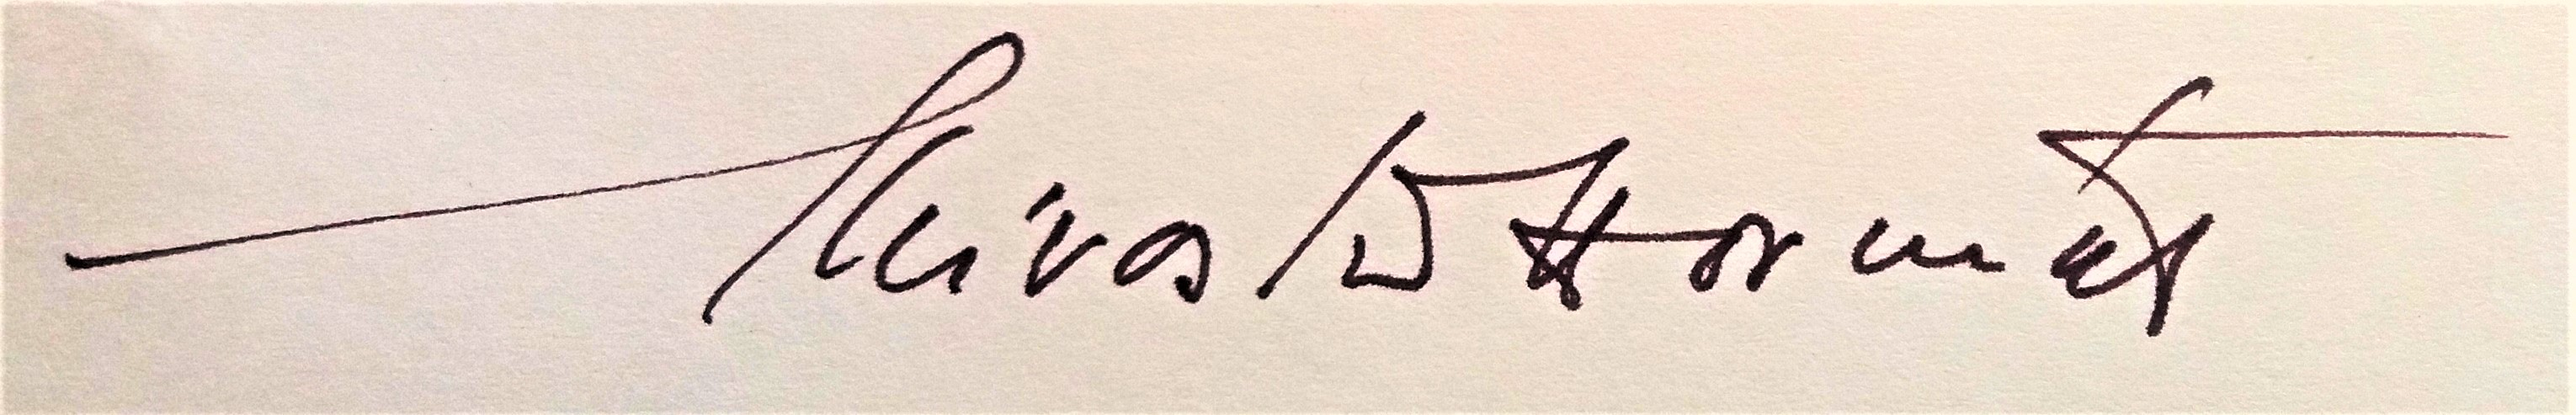 Signature of Miroslav Horníček, Czech actor (1993)